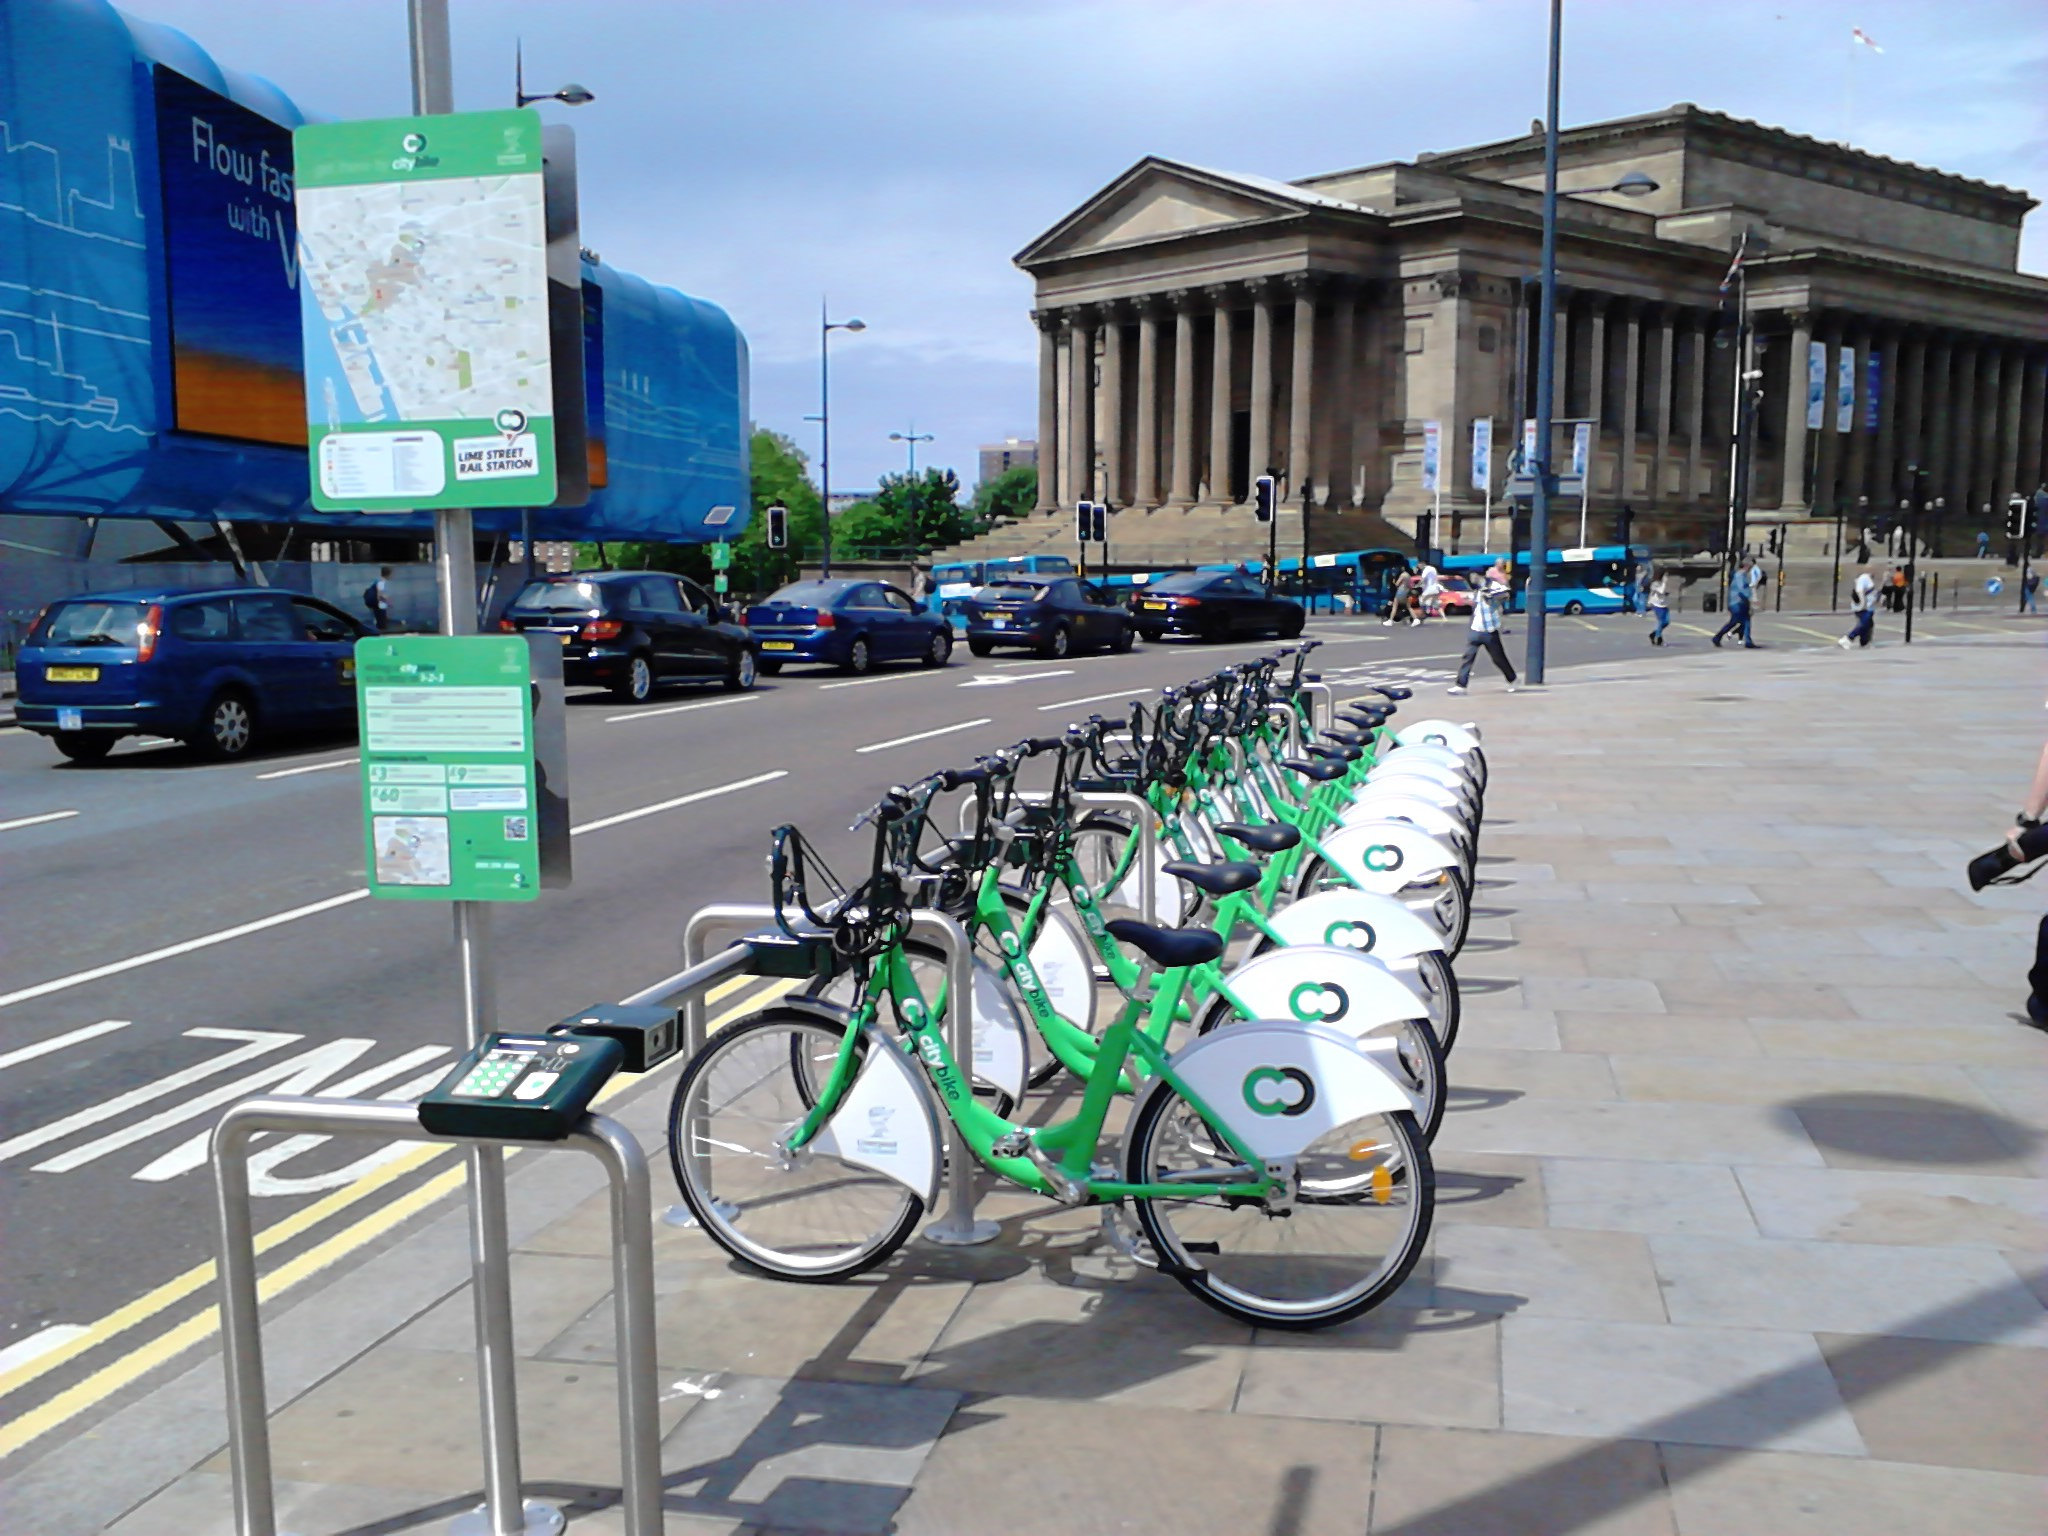 Bike_&_Go_bicycles_on_Lime_Street,_Liverpool_(2).jpg